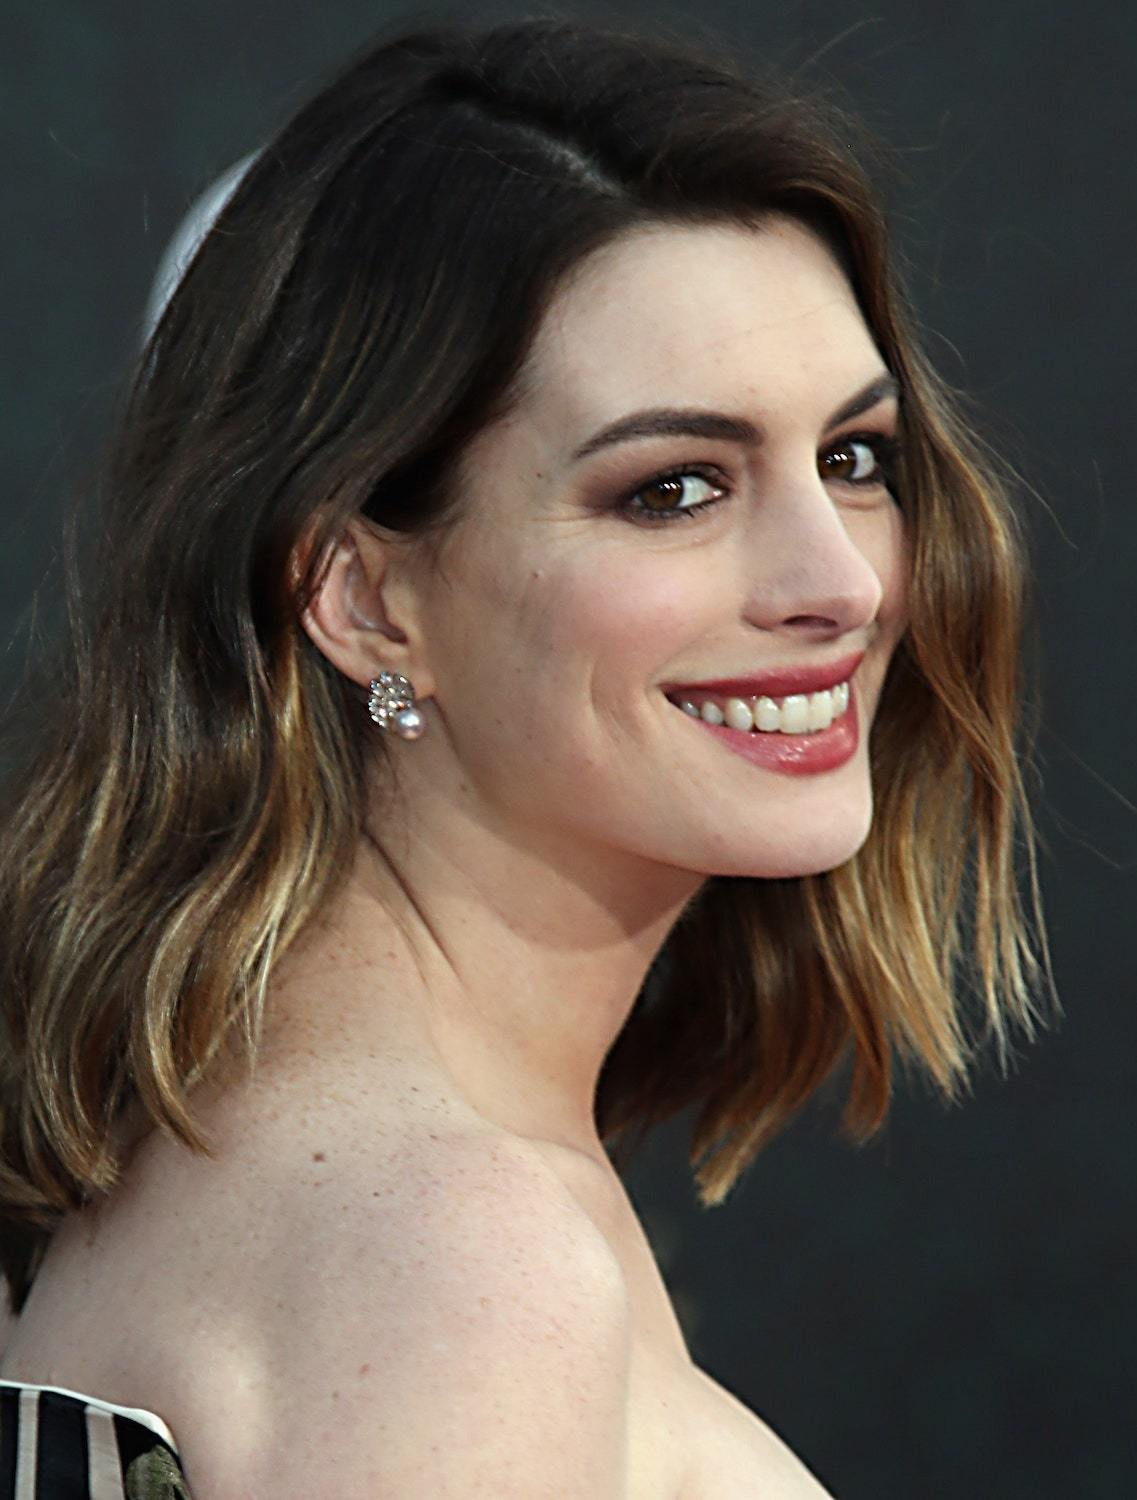 Anne Hathaway dengan model rambut ombre cokelat golden brown